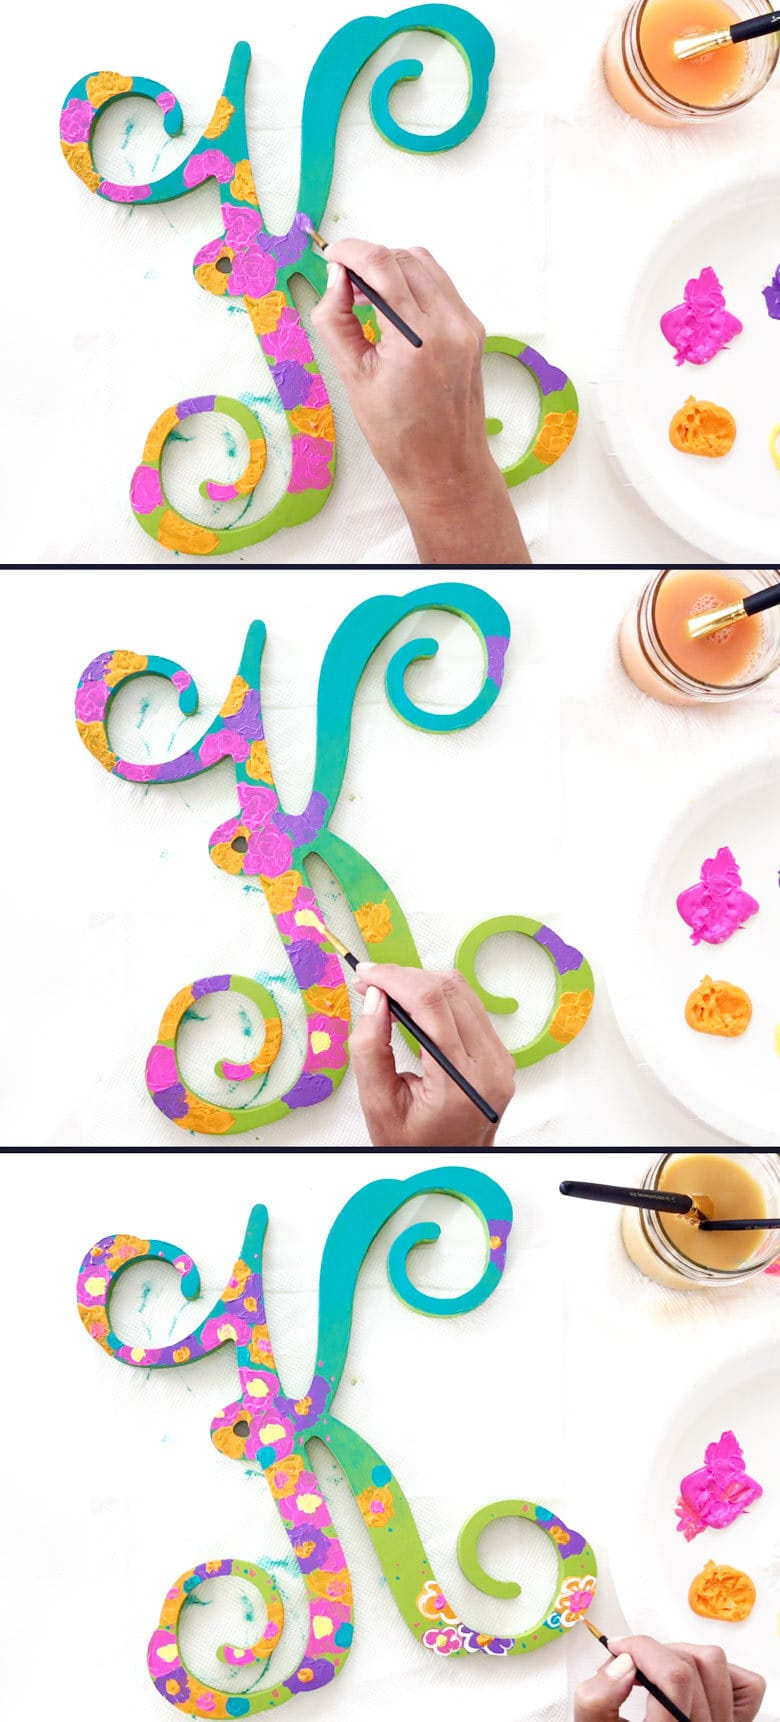 Painted wooden shapes for crafts - Paint Different Color Shapes To Create Flowers